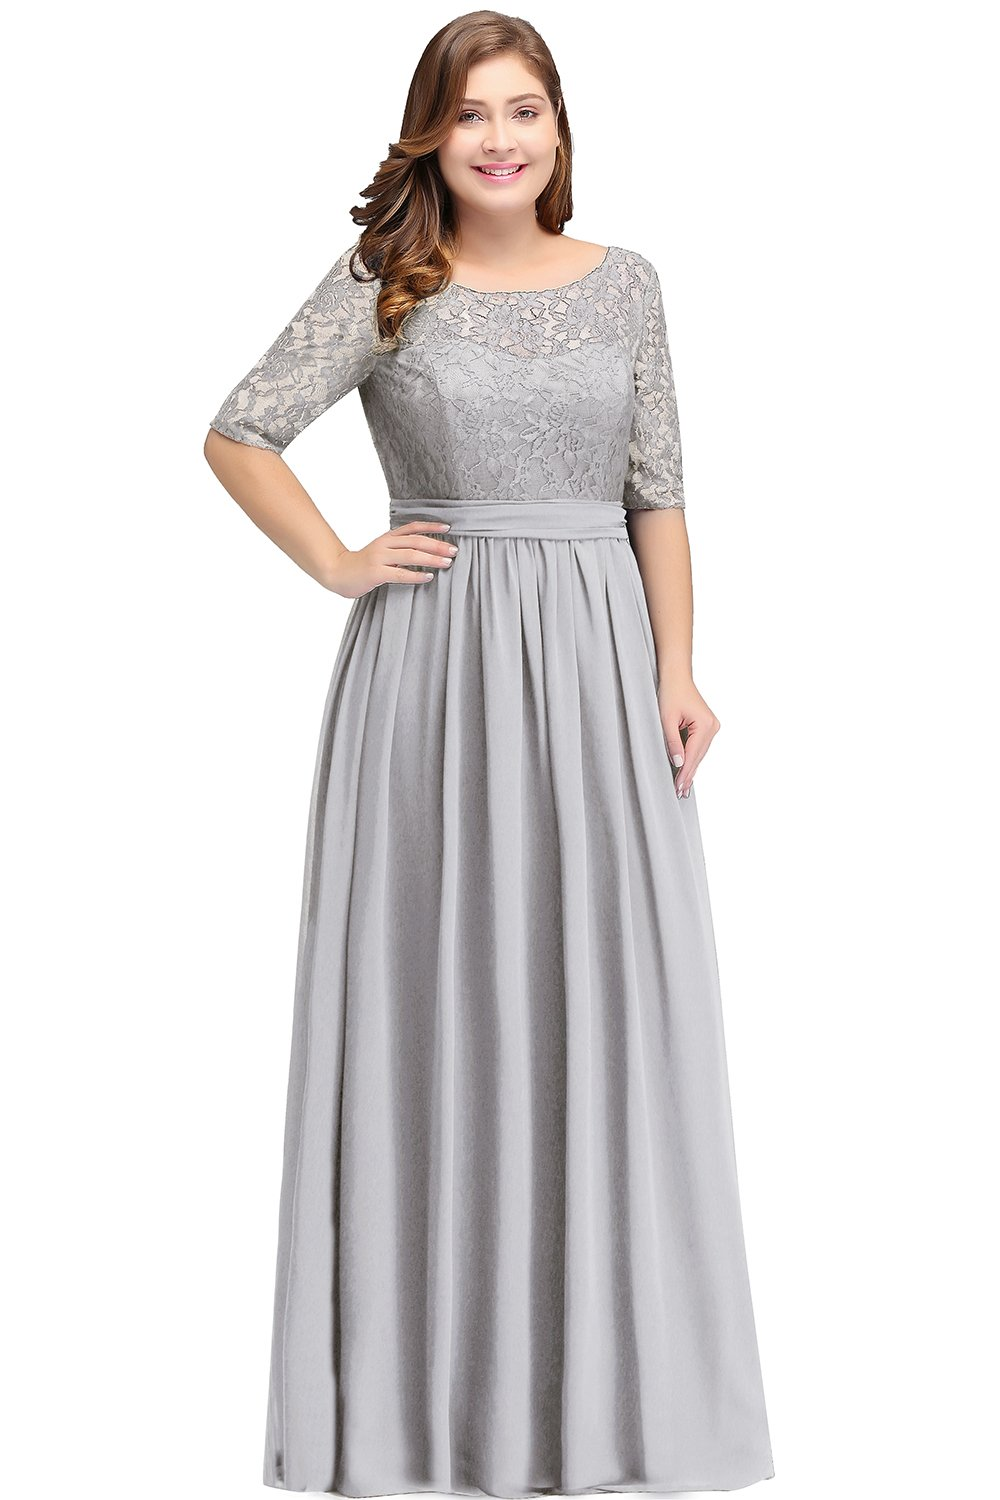 Womens Plus Size Formal Dresses for Ball Party Silver 24W